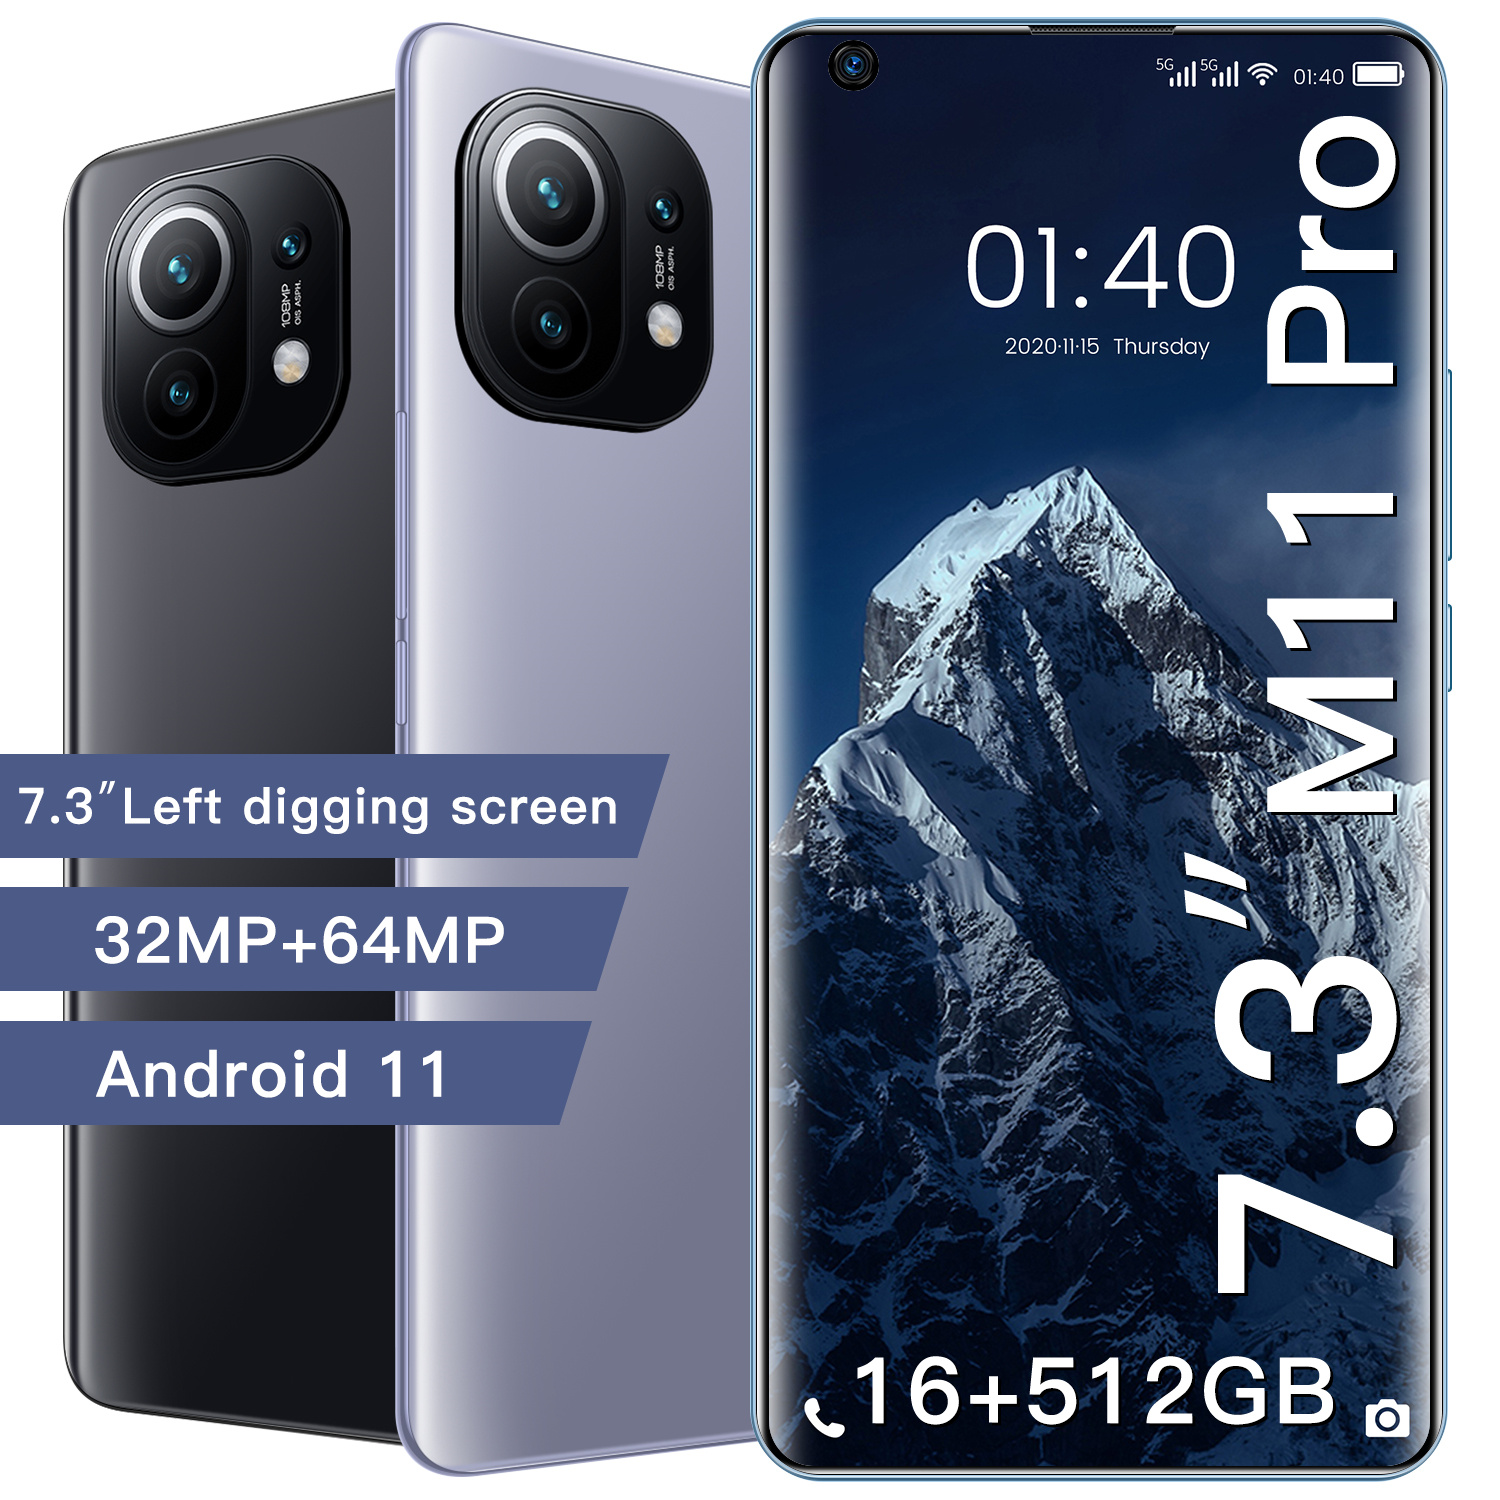 New Arrival M11 Pro 7.3 Inch Cellphone Android 11 6800mAh 16+512G 32MP+64MP...